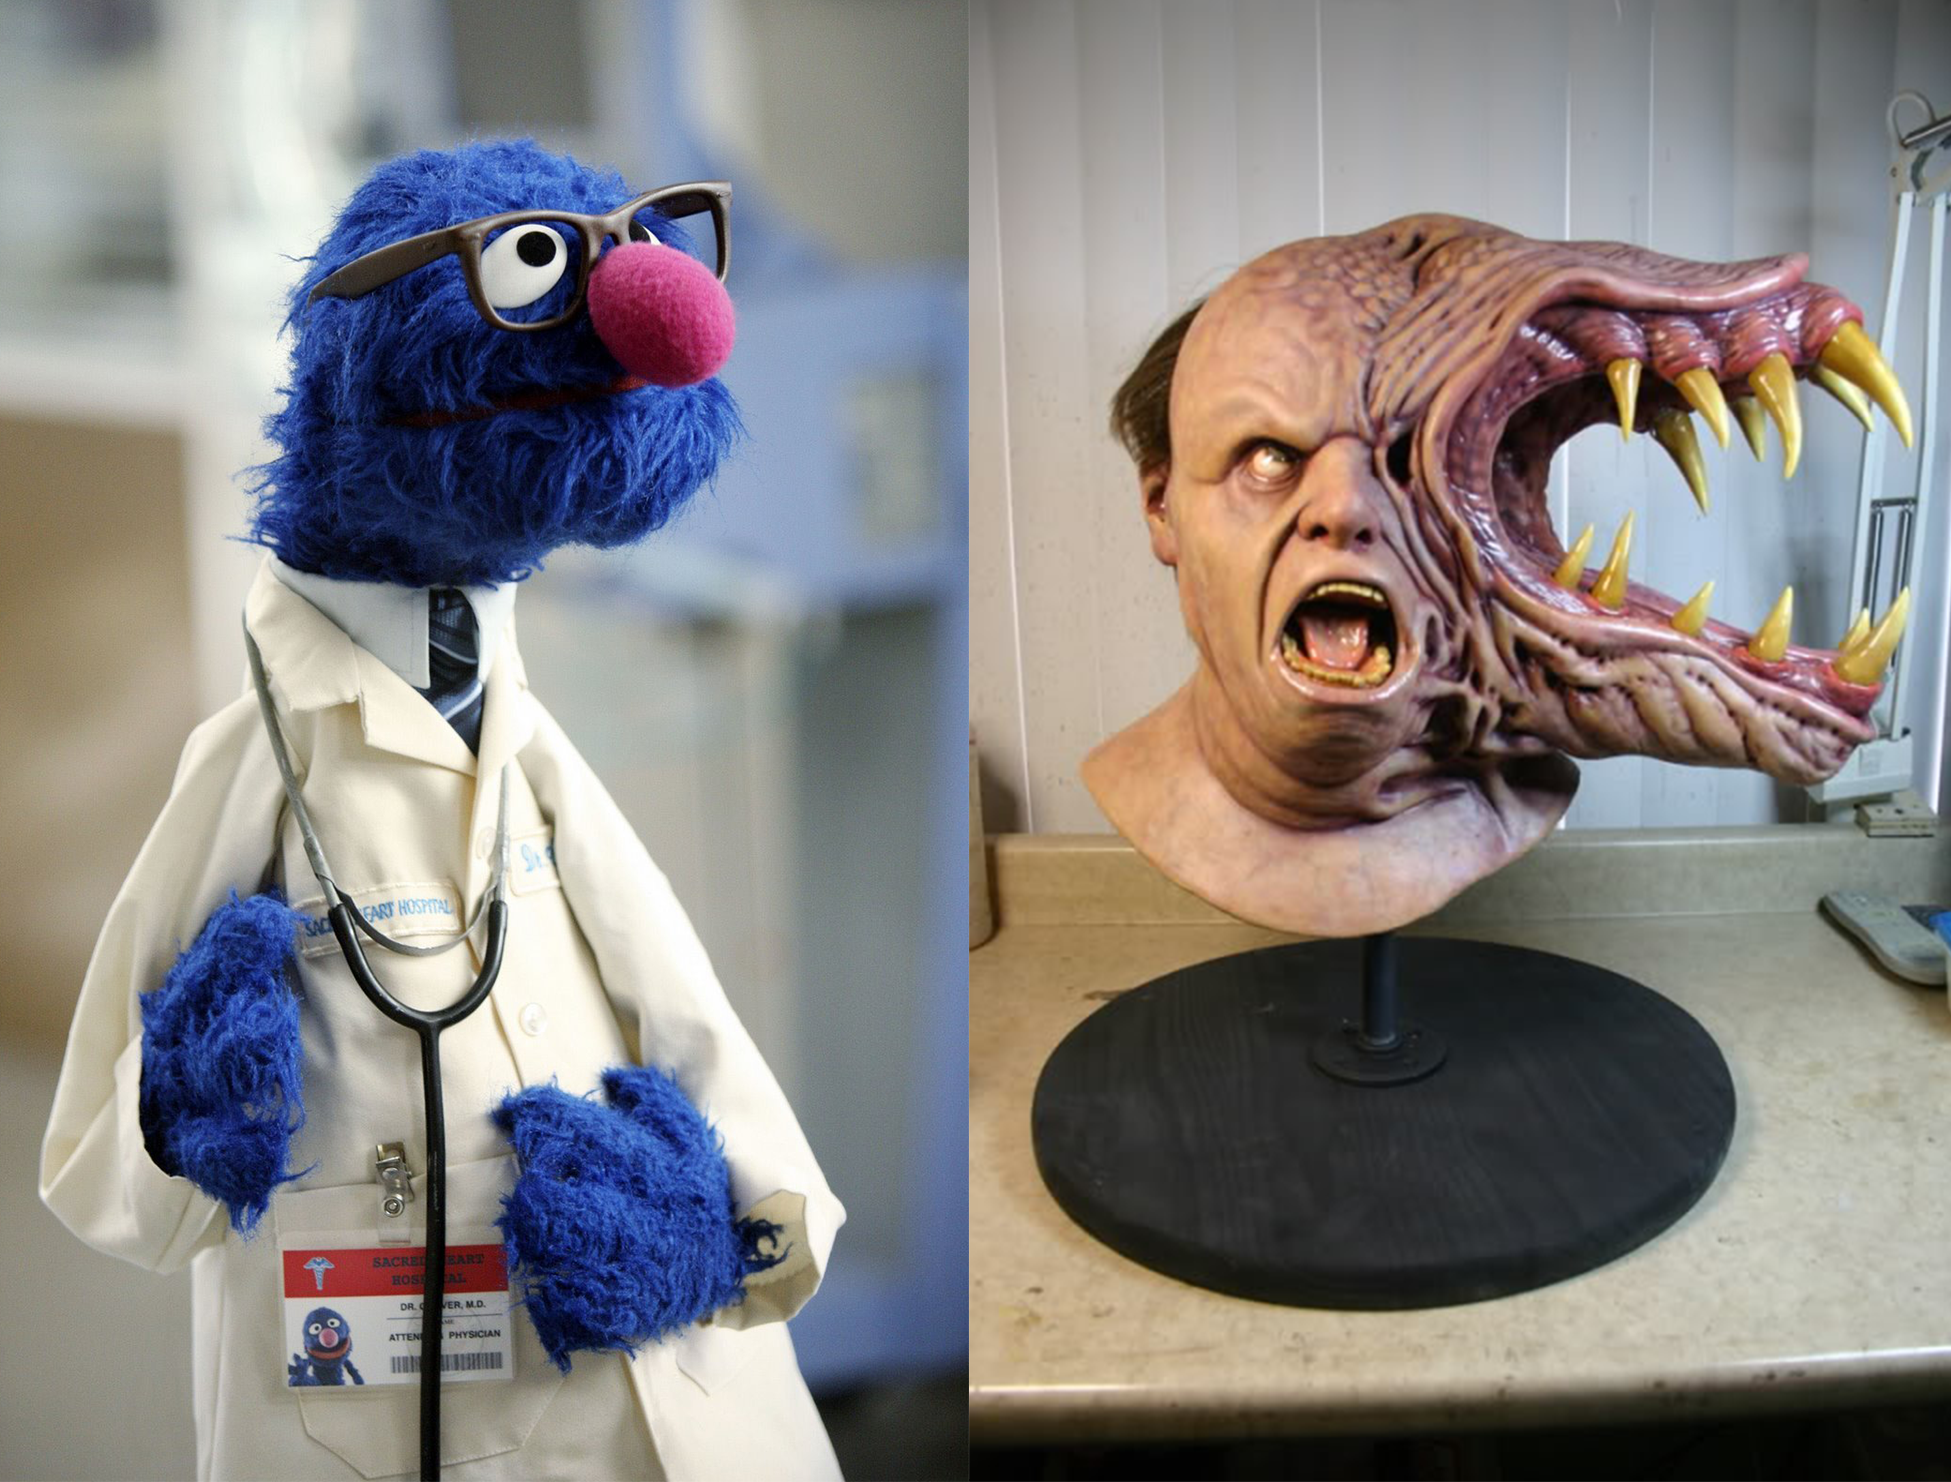 Sources: Grover (Sesame Workshop); The Thing (Universal Pictures, Turman-Foster Company) Model by  Casey Love .